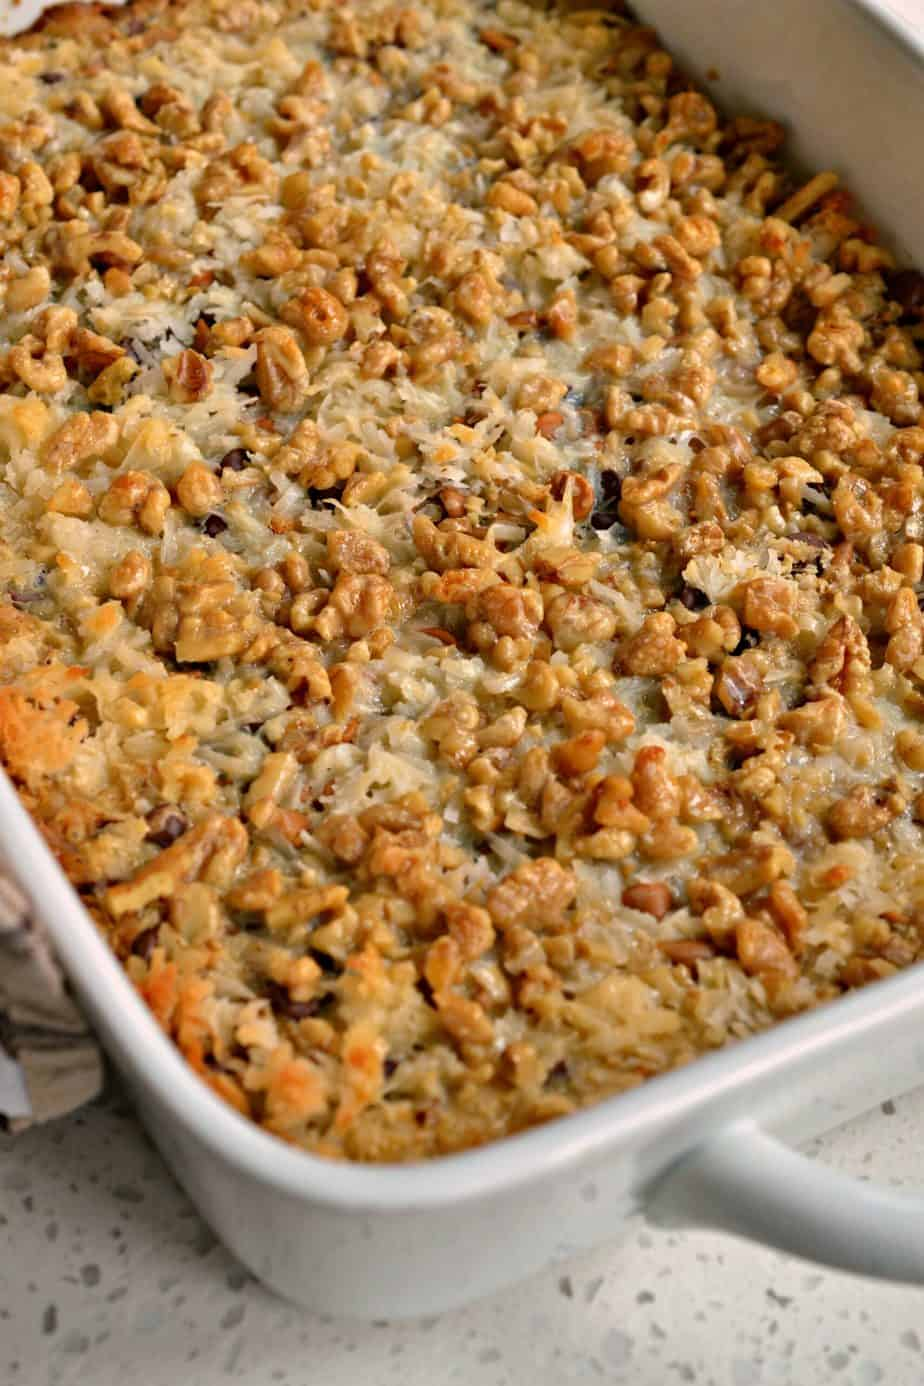 Filled with chocolate and peanut butter chips, coconut and walnuts these Magic Cookie Bars are sure to please everyone.